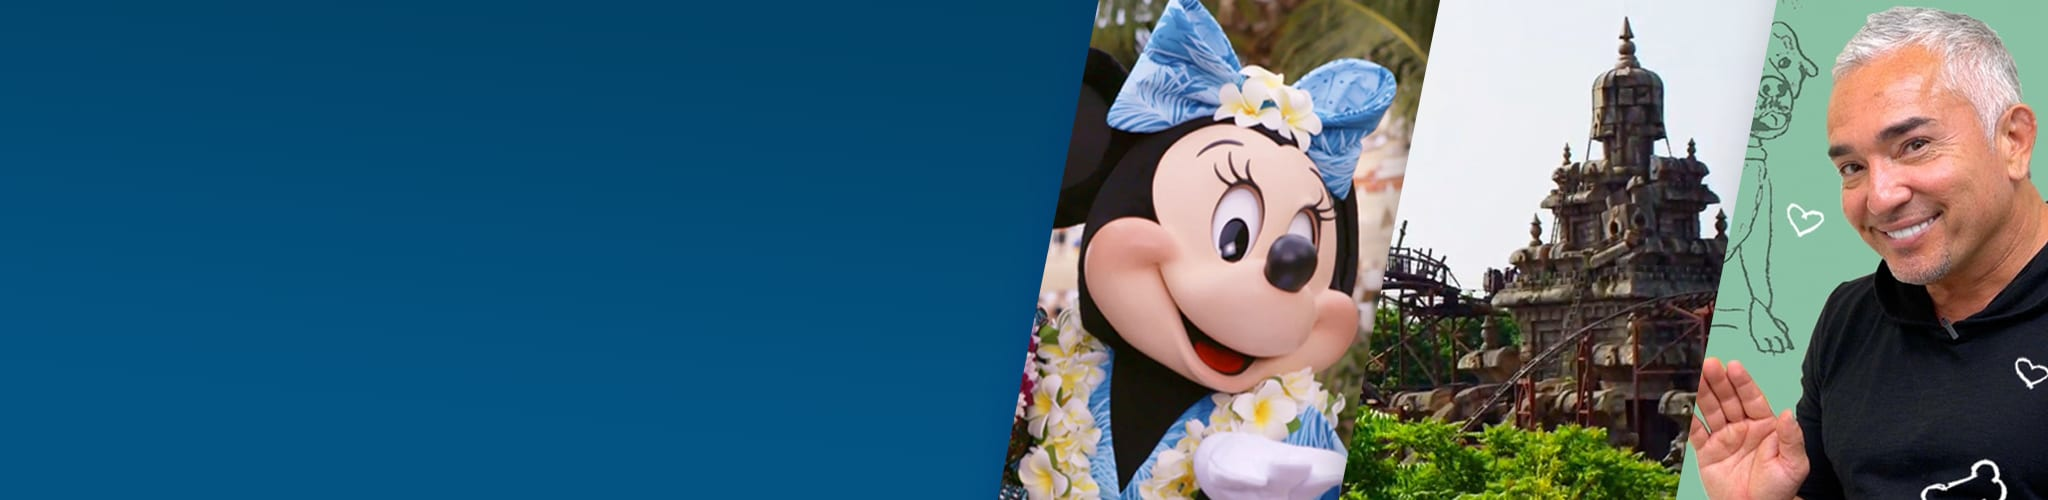 Hero - Disney Magic Moments - generic banner